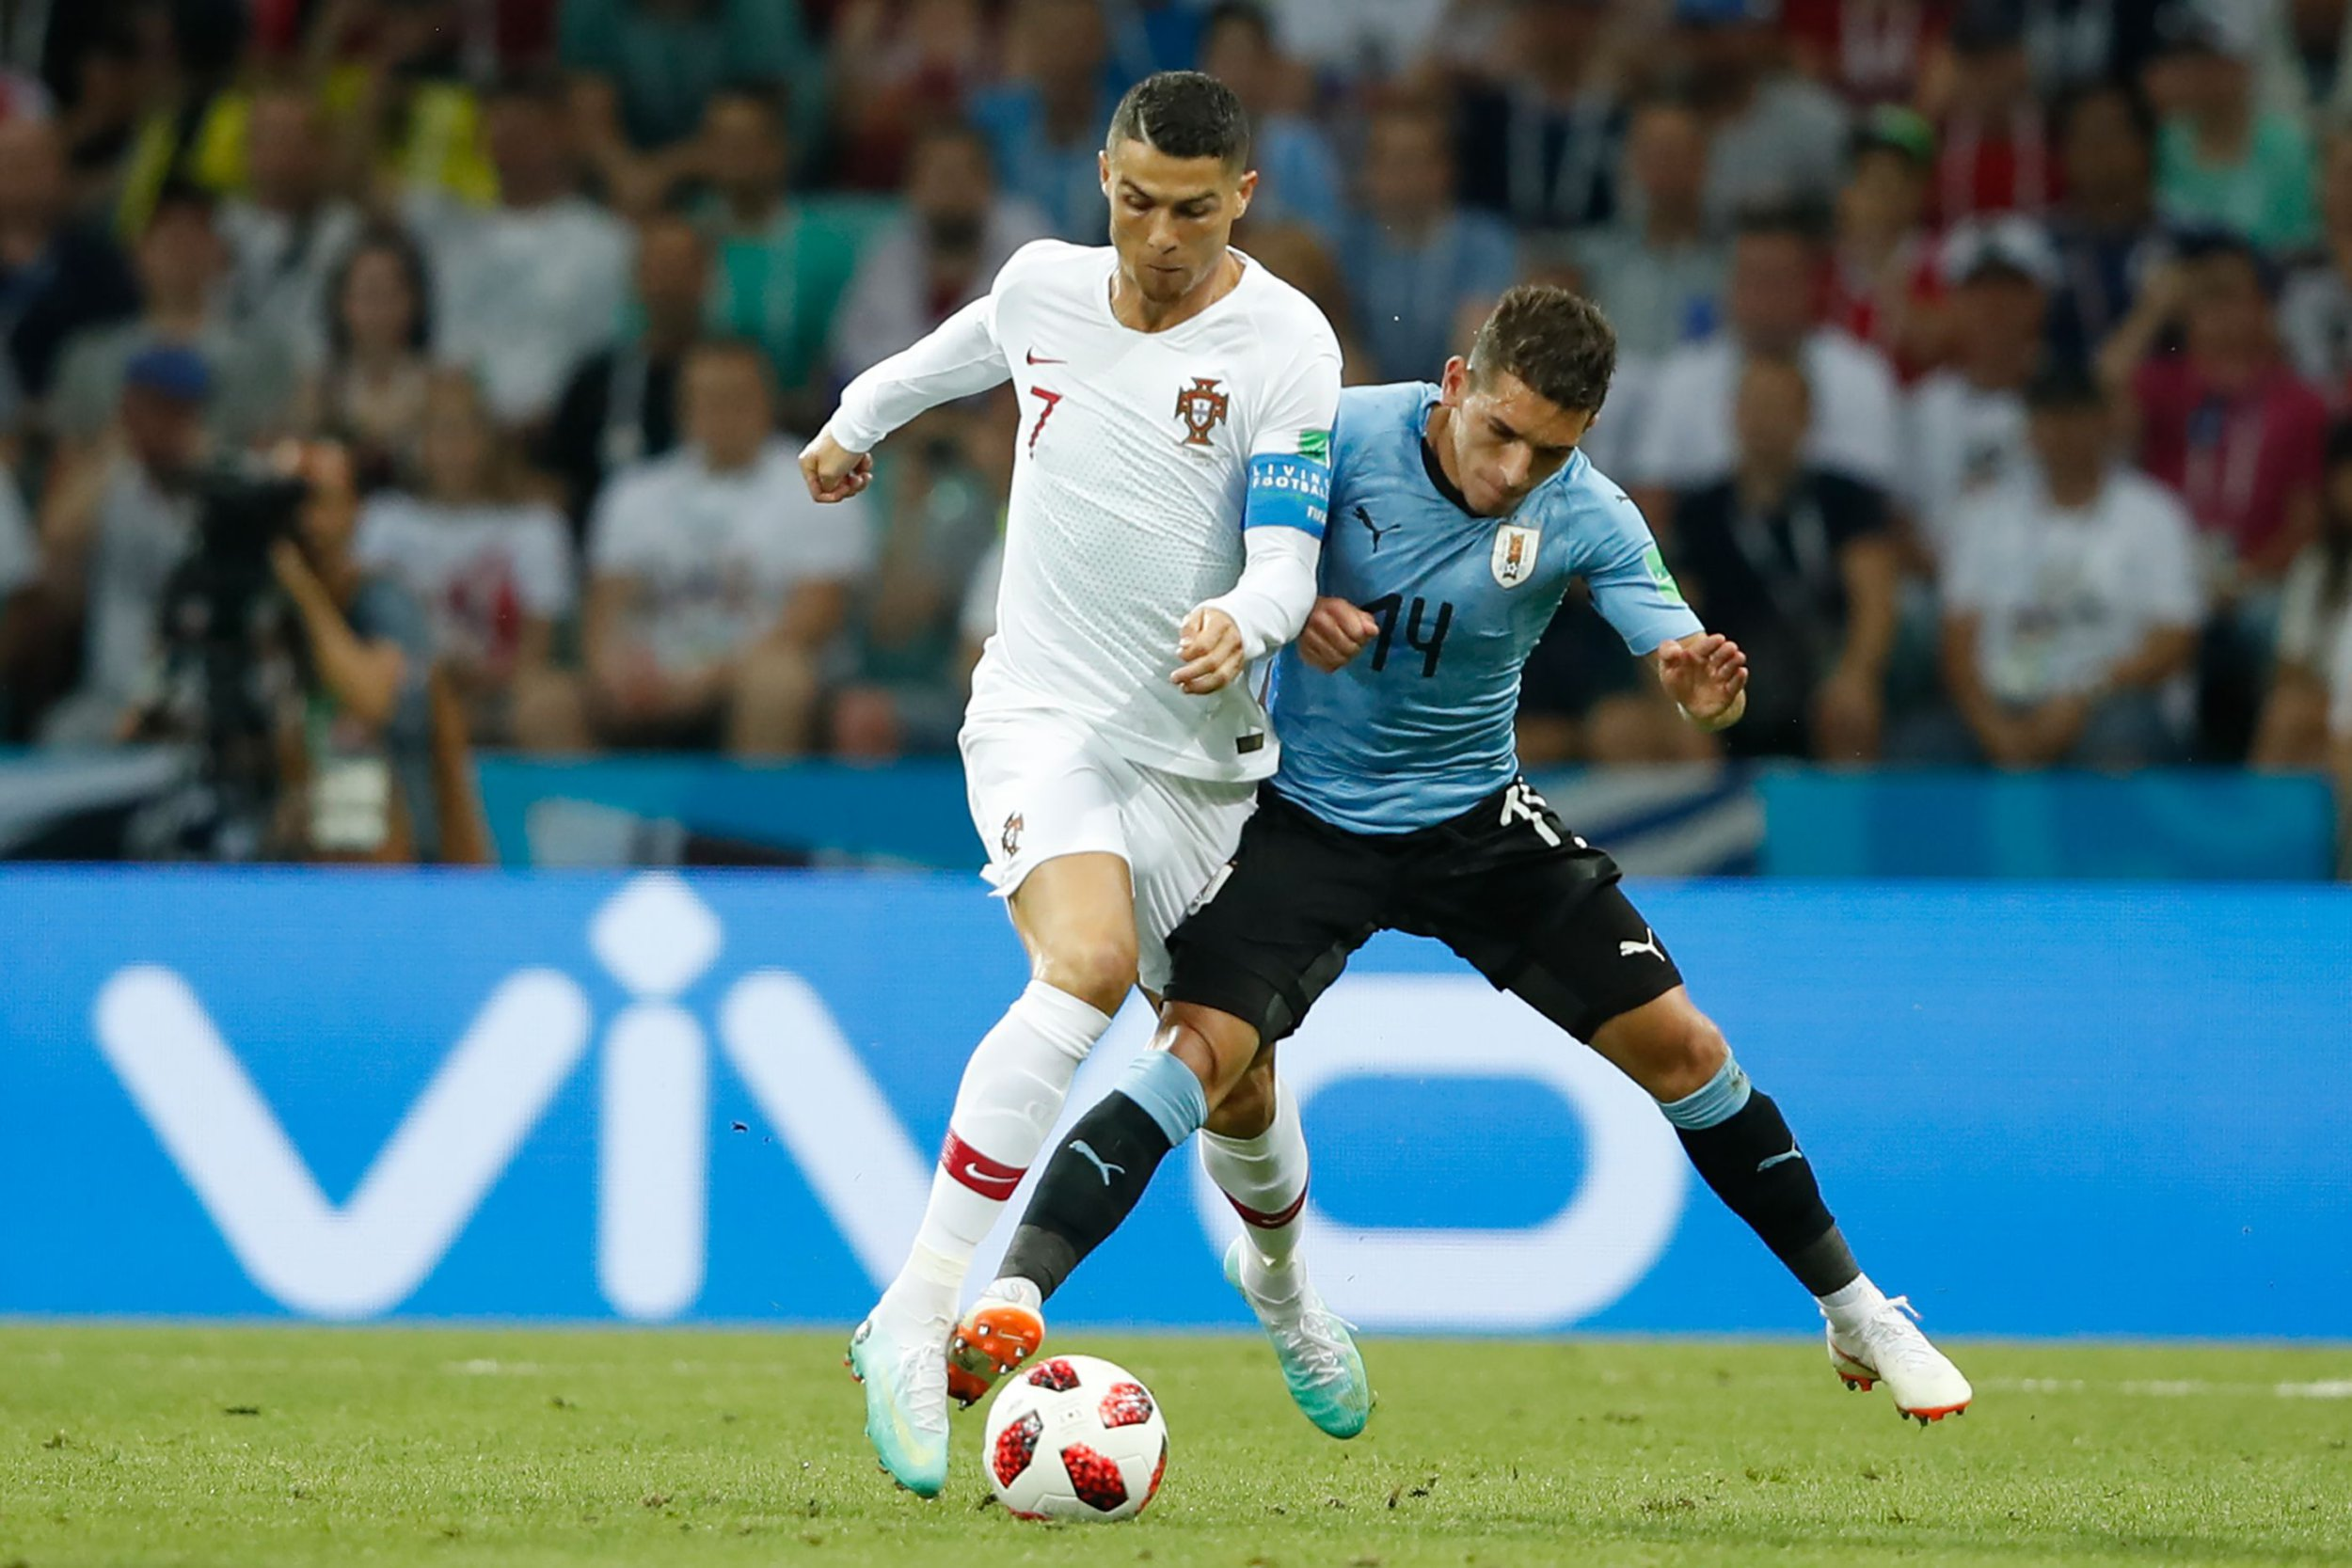 Lucas Torreira speaks out on flooring Cristiano Ronaldo during the World Cup after completing Arsenal move